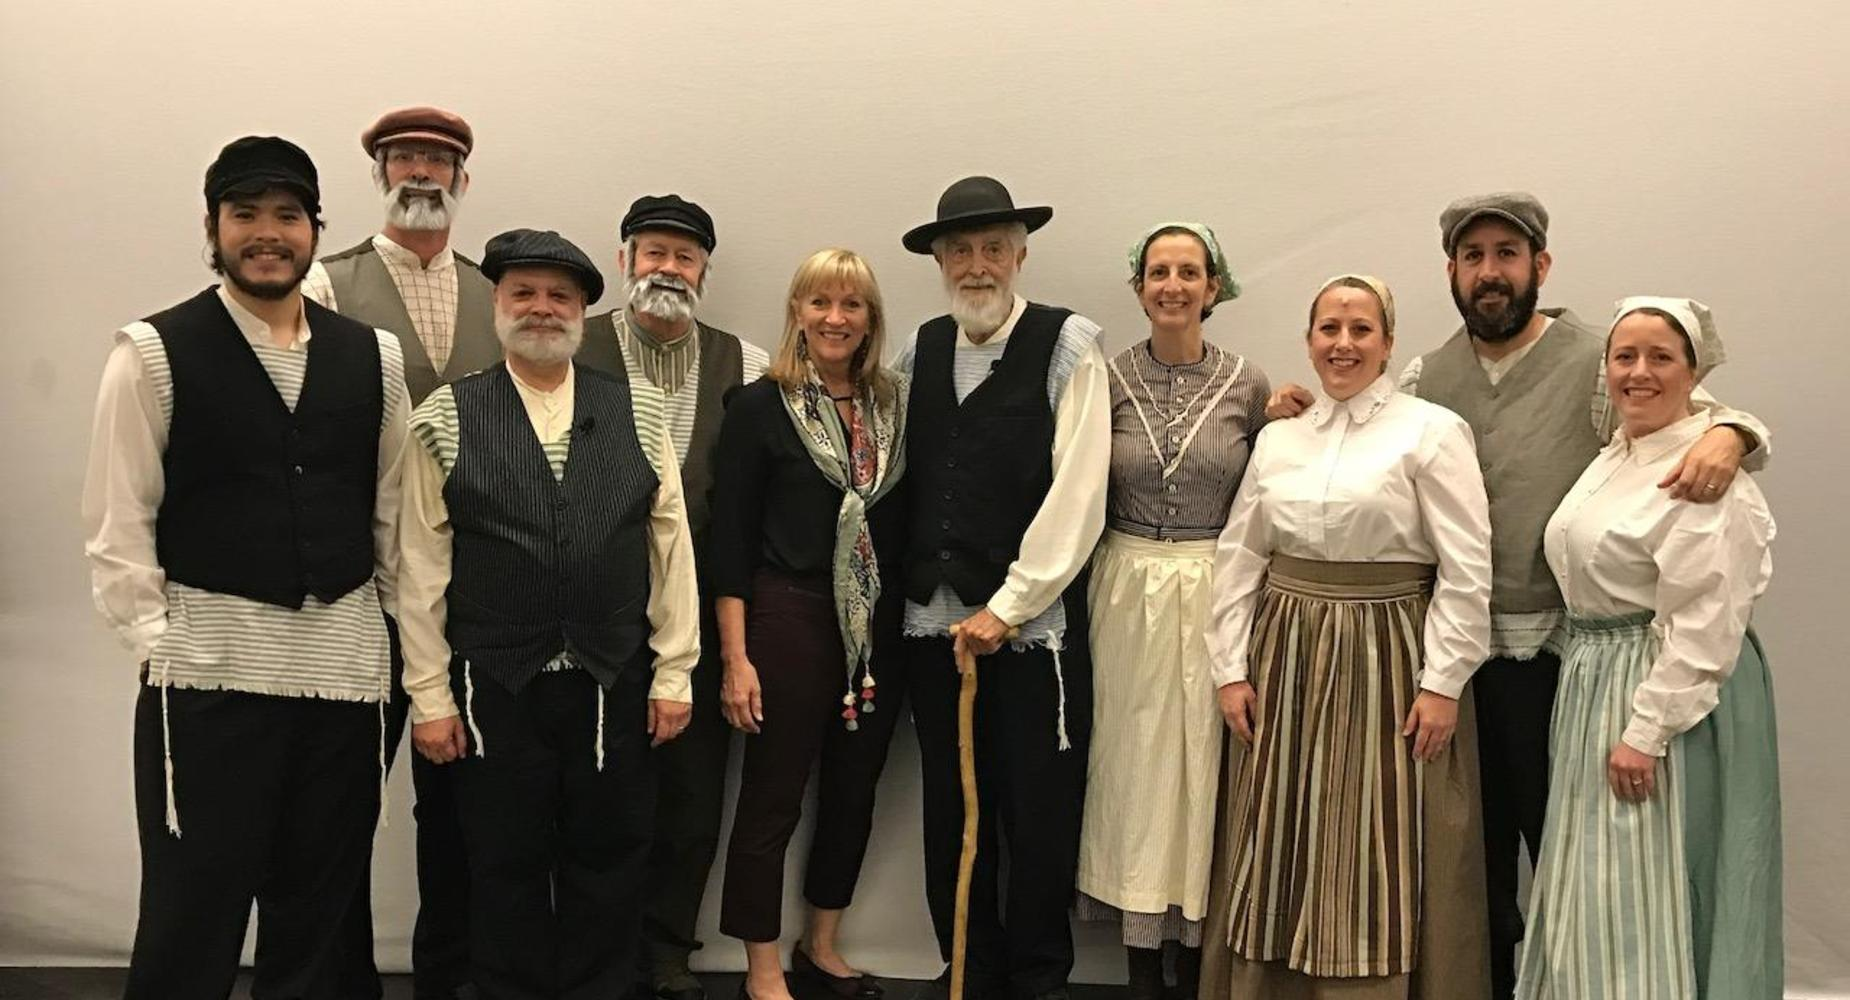 Staff members in Fiddler on the Roof